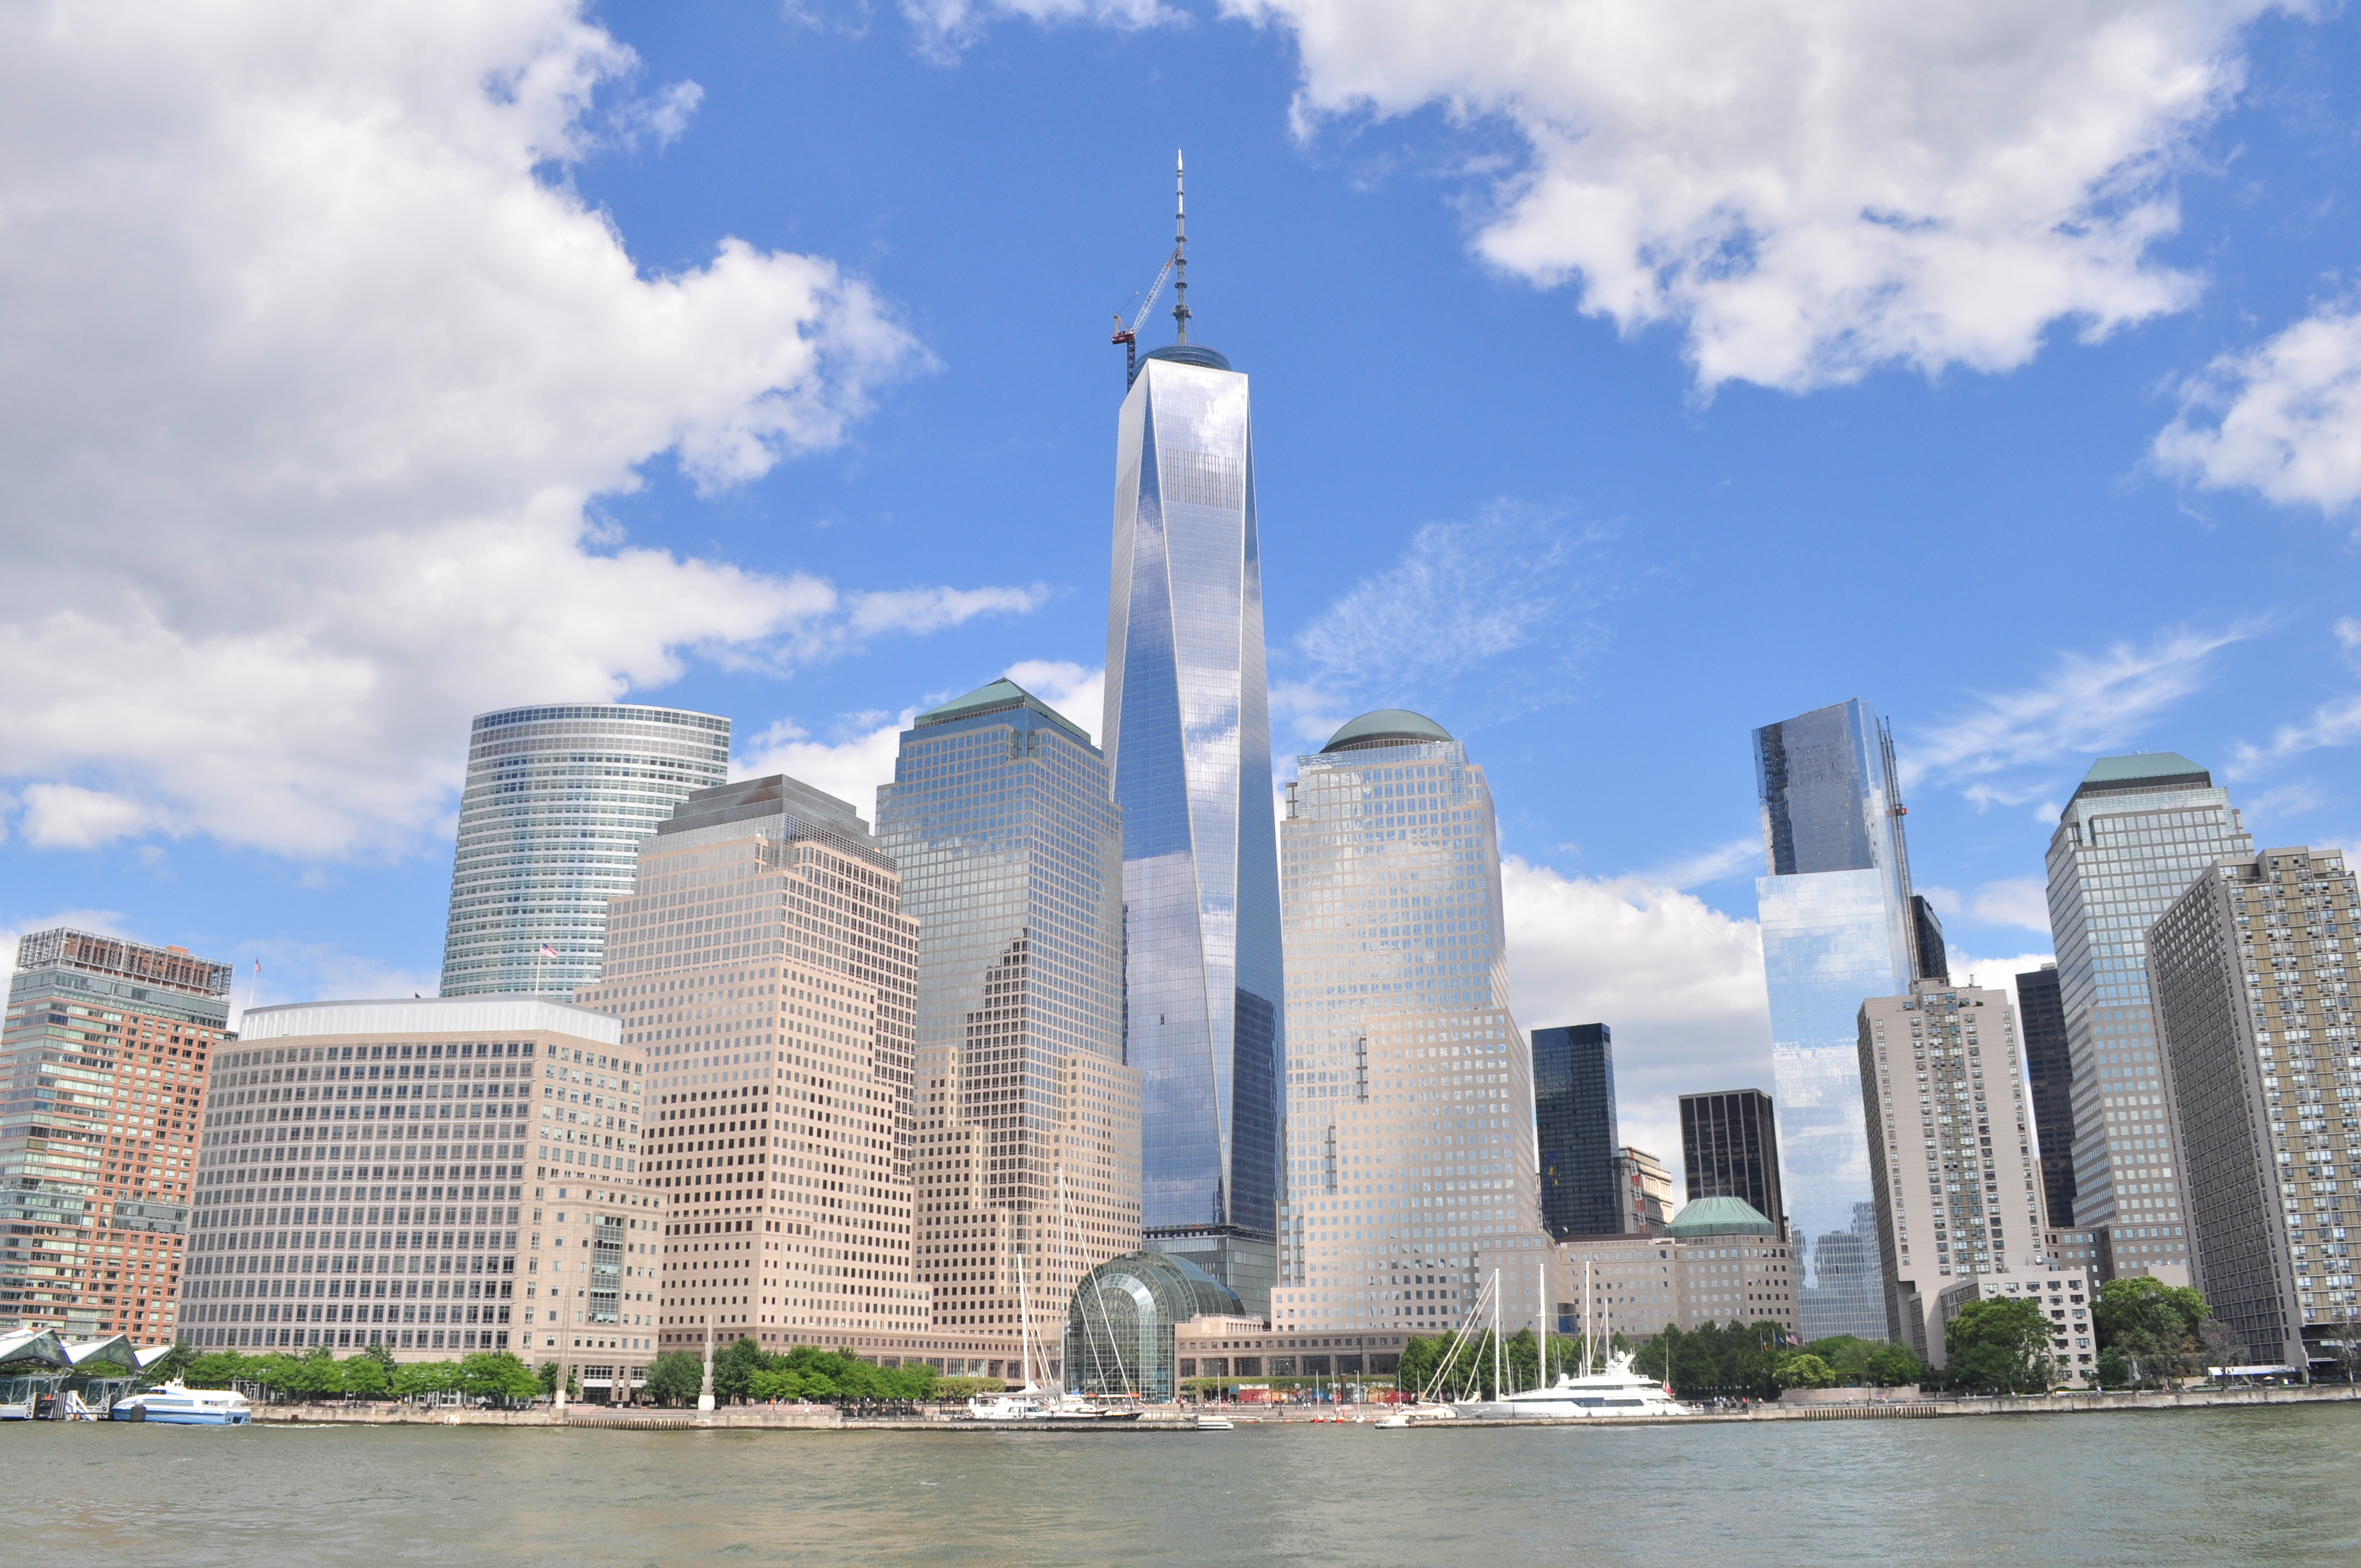 World Trade Center reopens 13 years after 9/11 terrorist attack